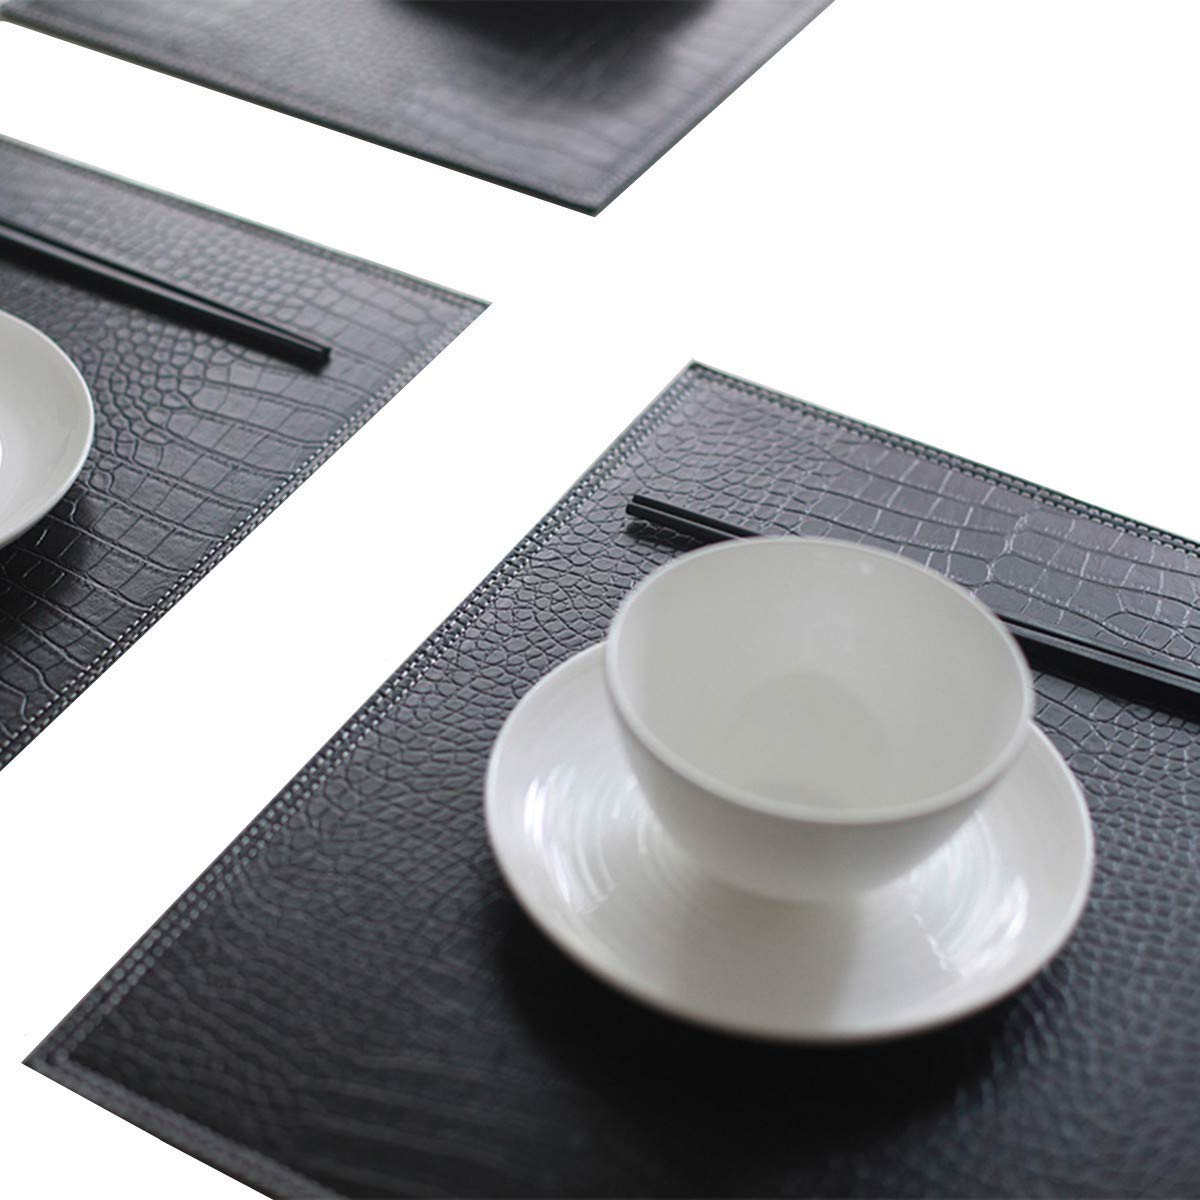 WILDFOUND XinFu Home Placemats Set of 4 Firm Faux Leather PU Heat & Stain Resistant Easy to Clean